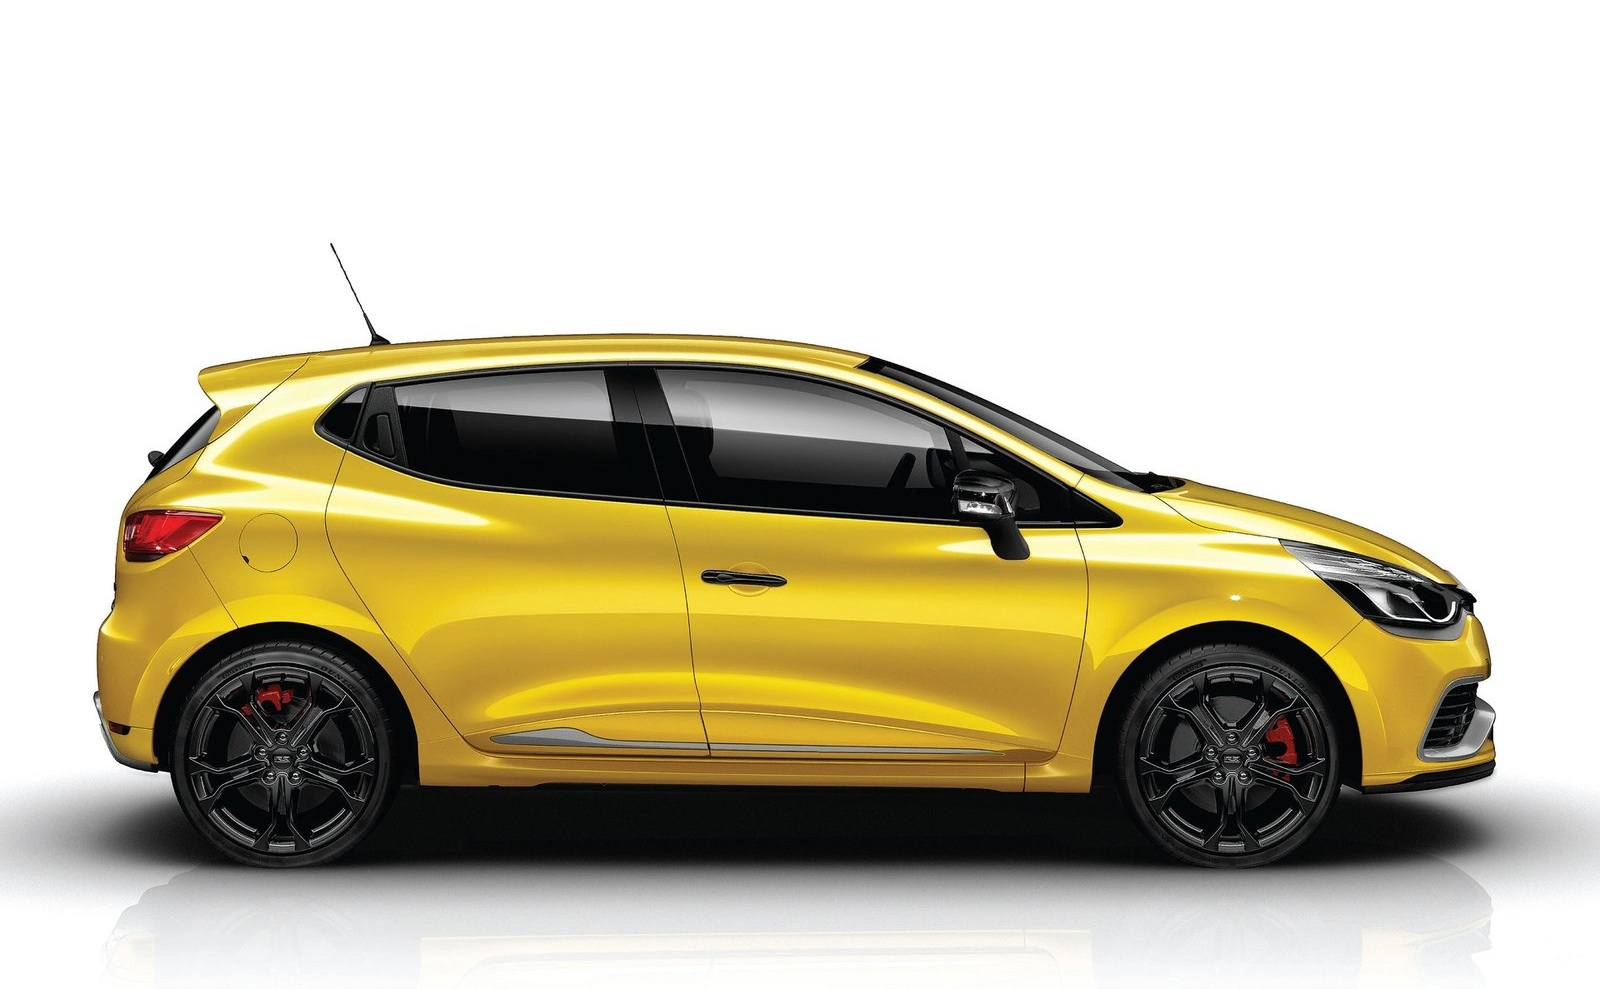 renault unveils new clio rs 200 turbo with double clutch. Black Bedroom Furniture Sets. Home Design Ideas